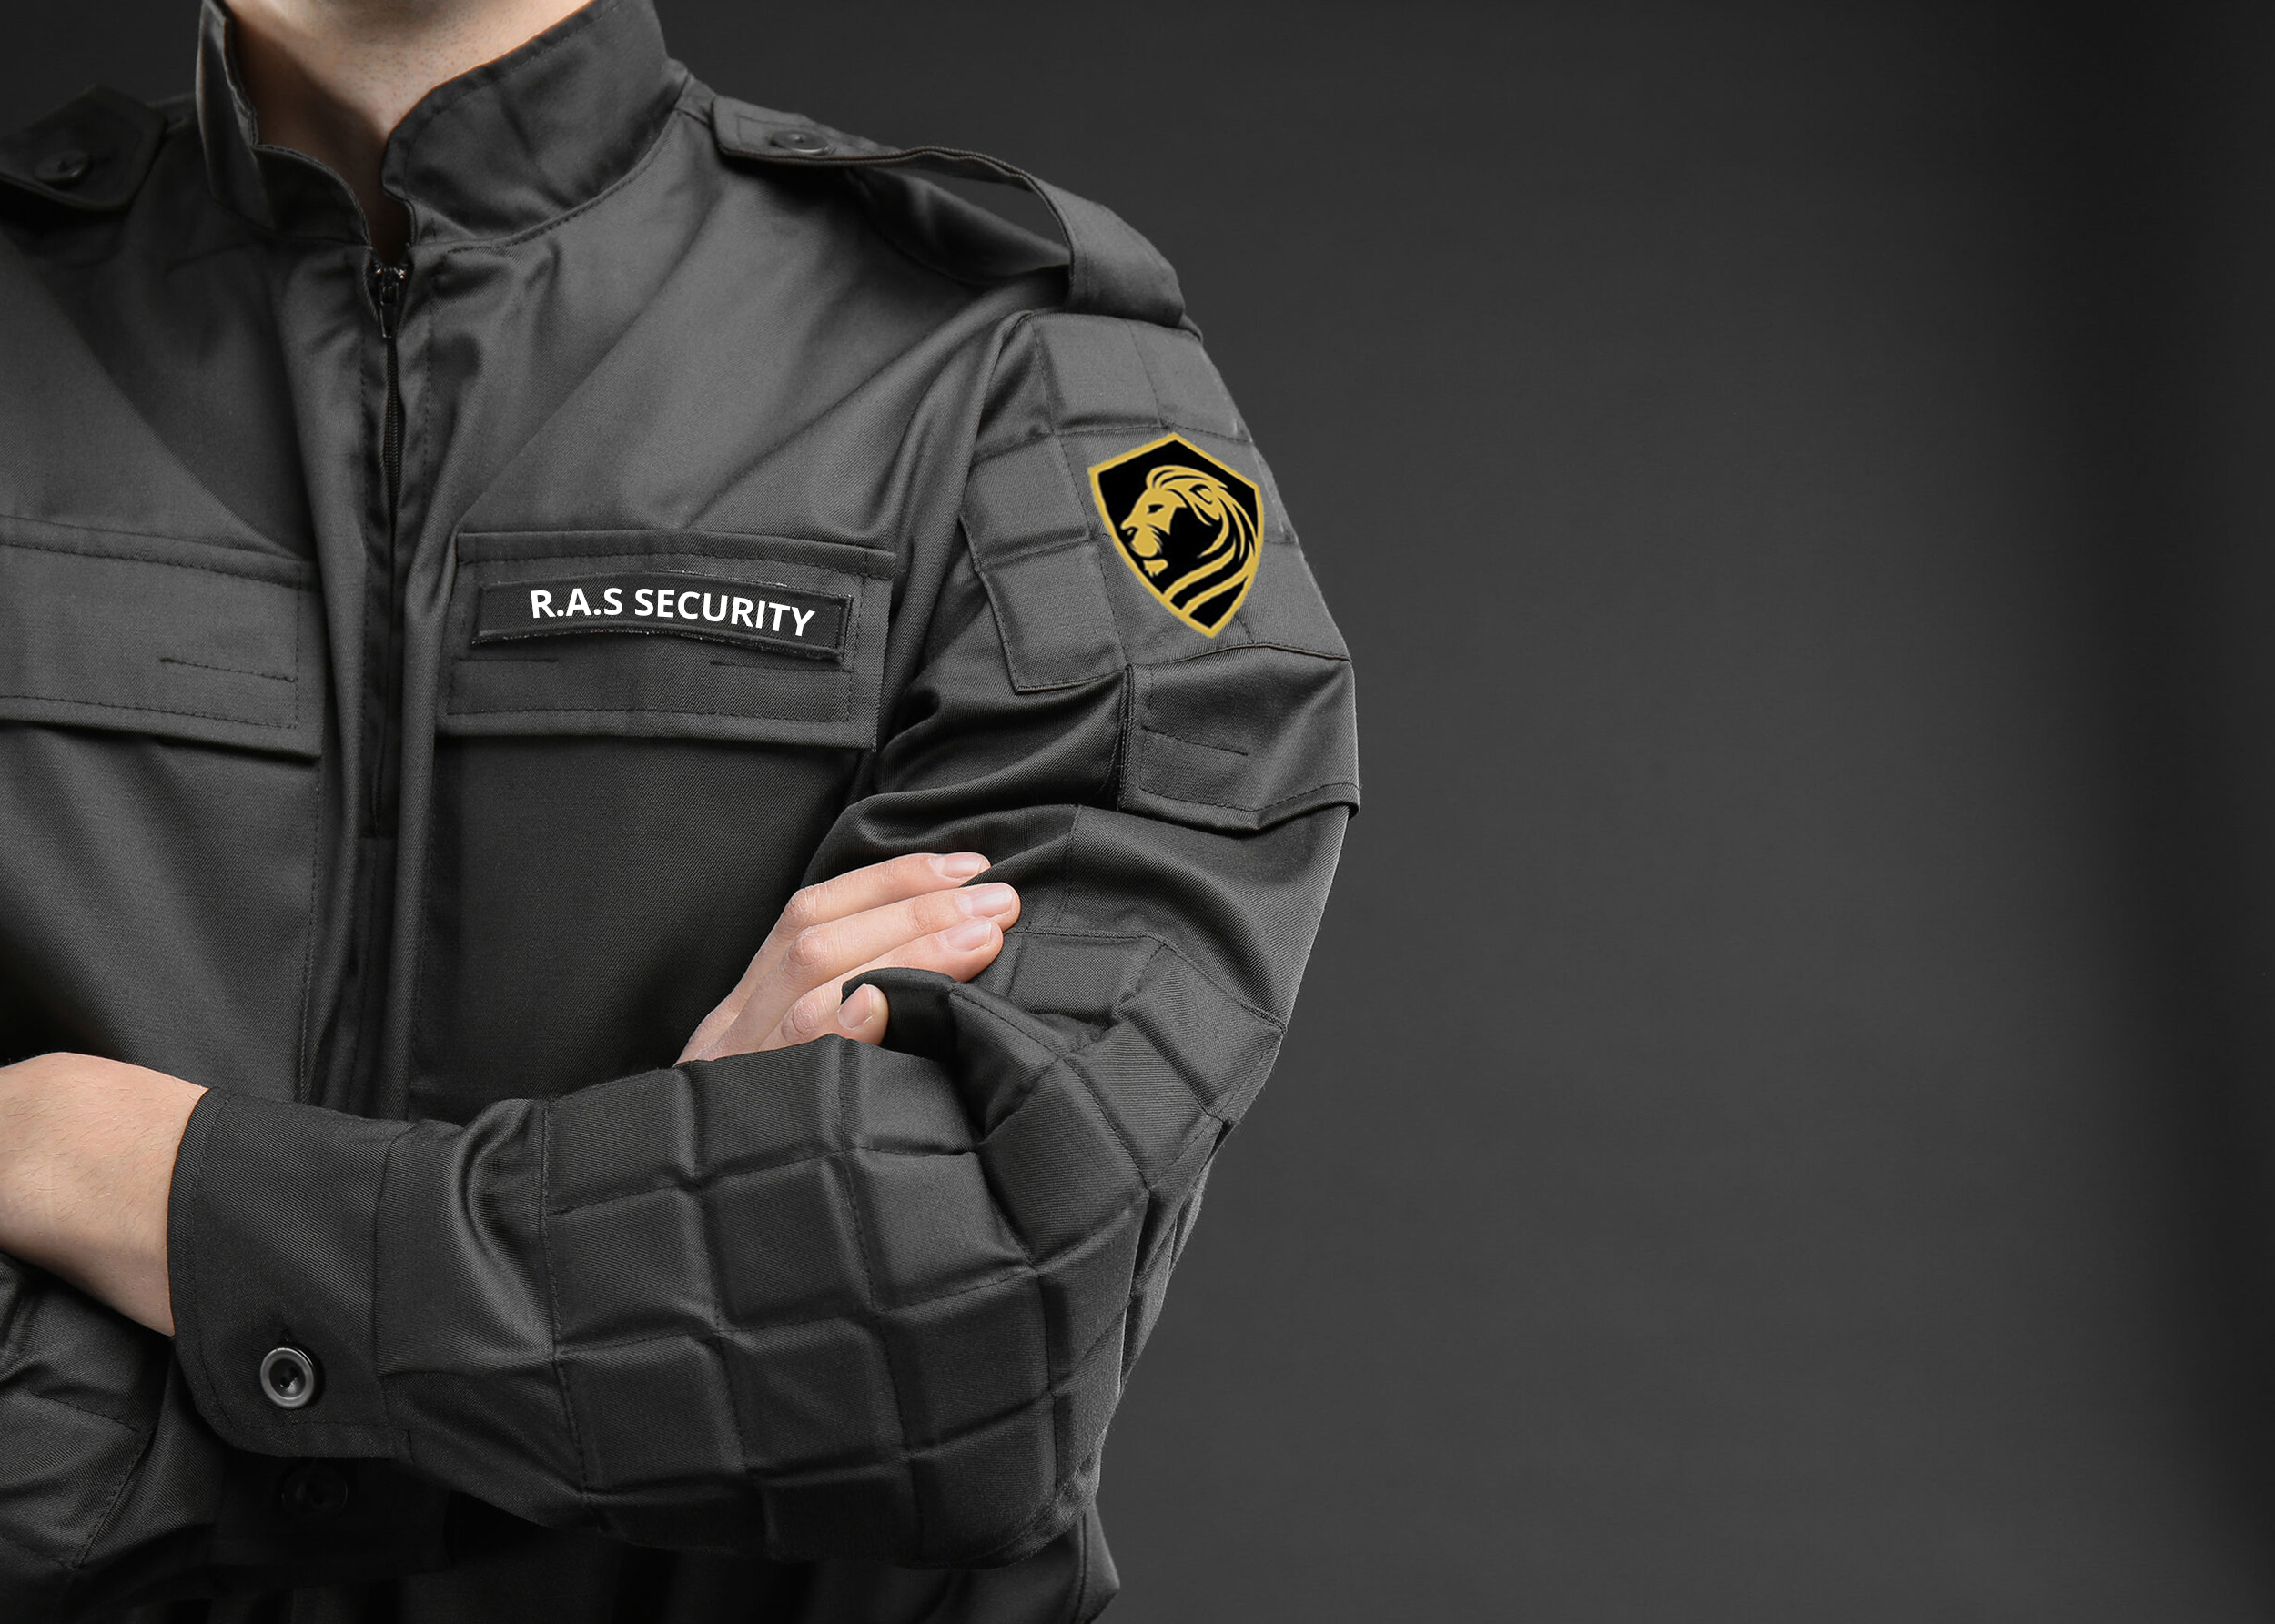 R.A.S Security Personenschutz